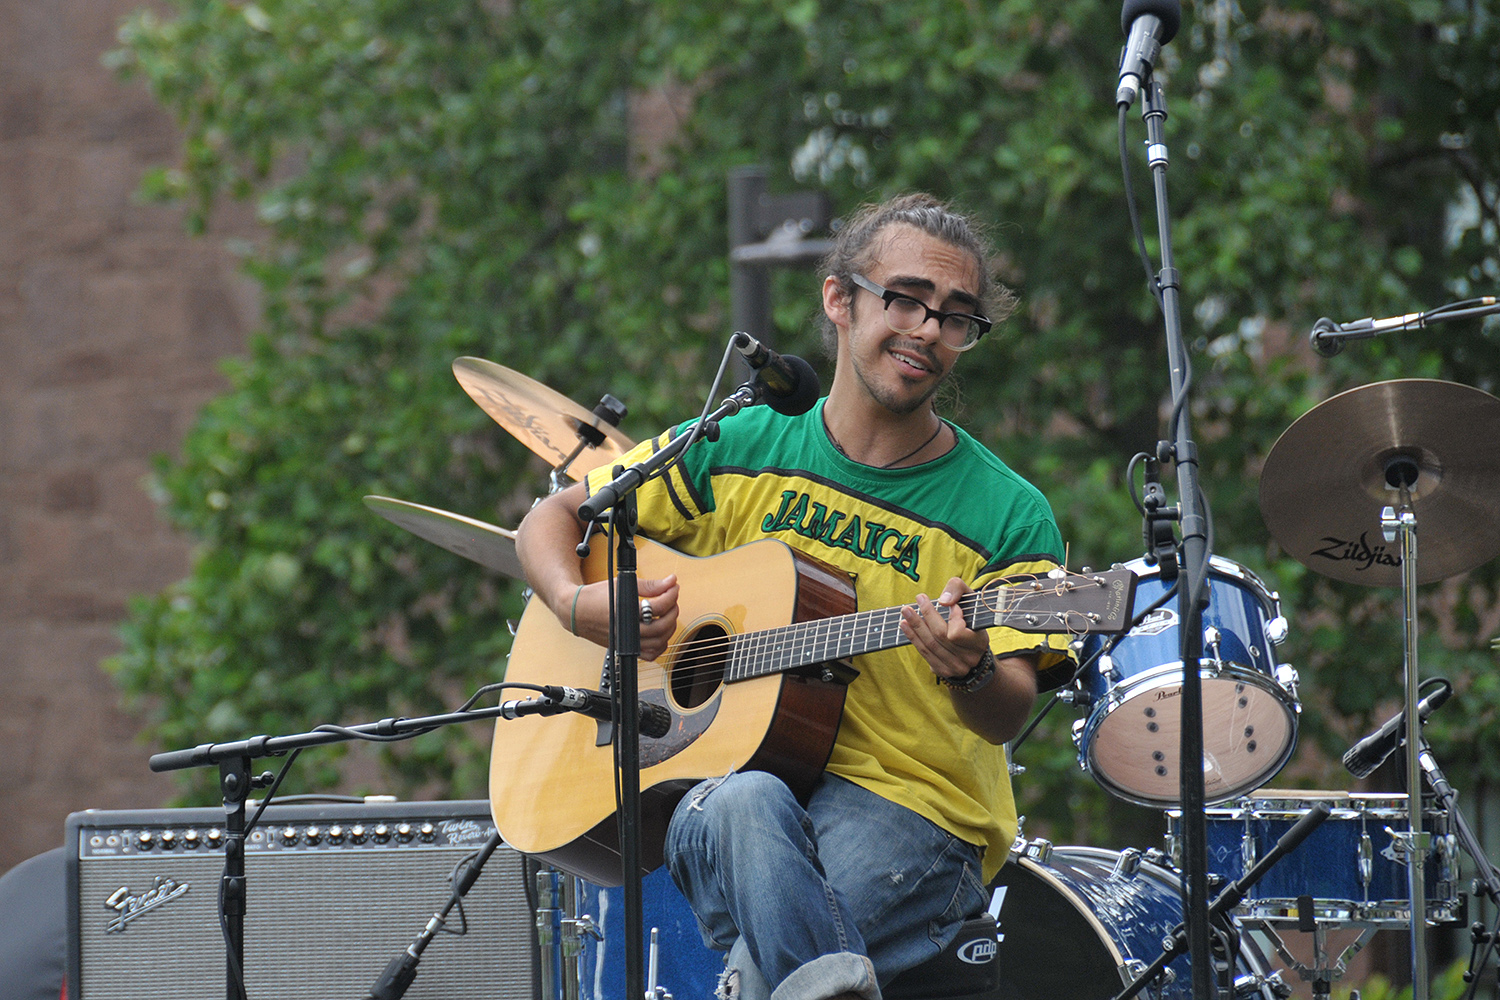 The Mash at Wesleyan University, Sept. 9. (Photo by Caroline Kravitz)